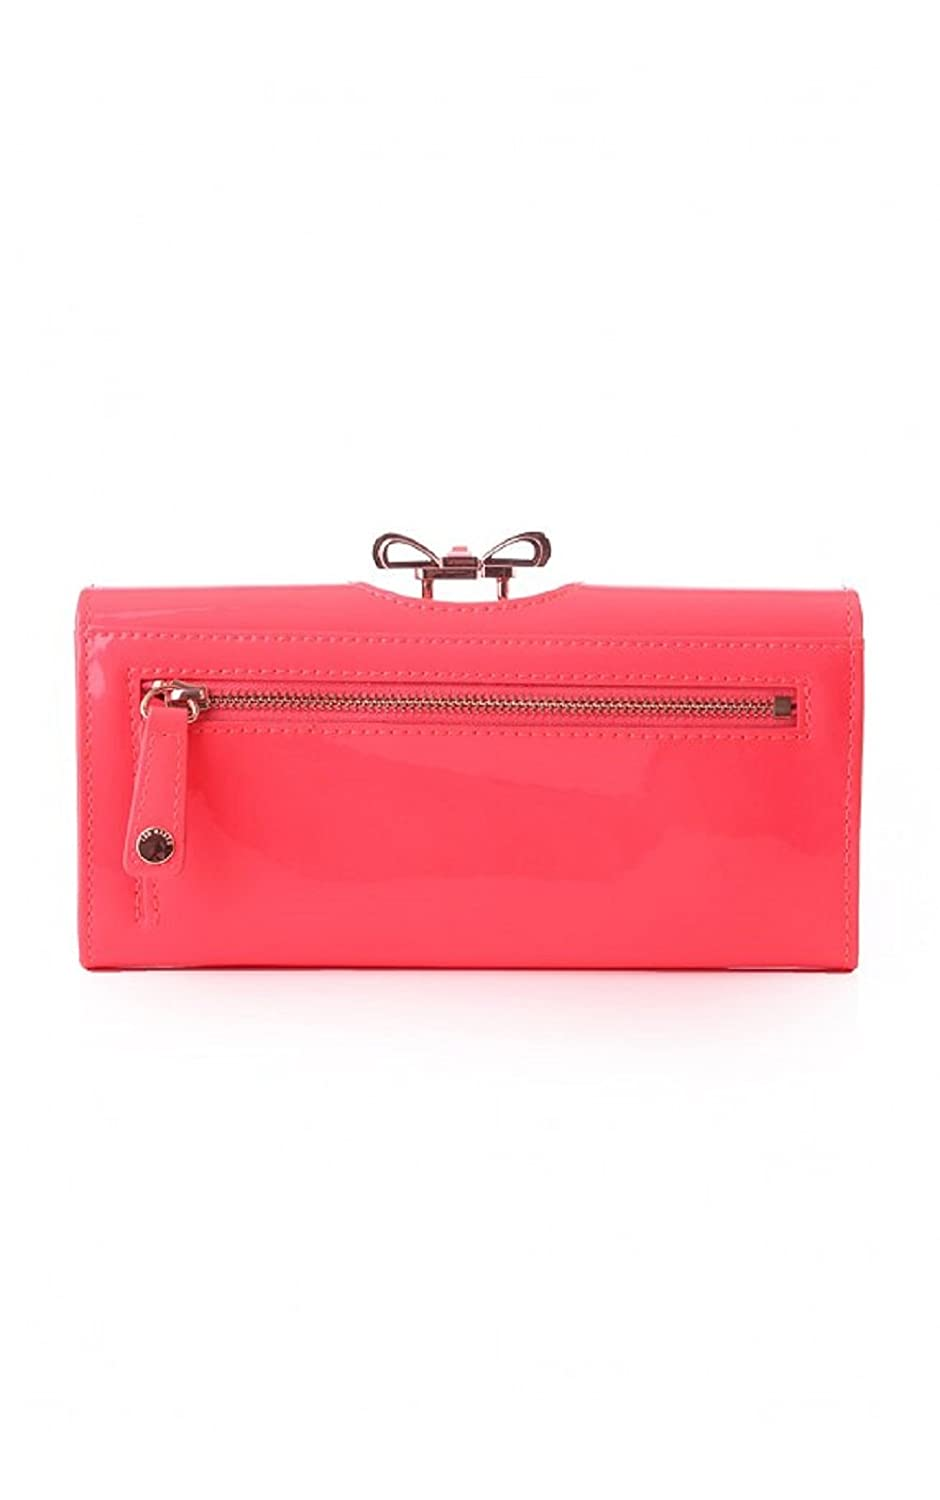 8e7b1c4fa Ted Baker Women s crystal bow bobble matinee purse Neon Bright Pink   Amazon.co.uk  Clothing